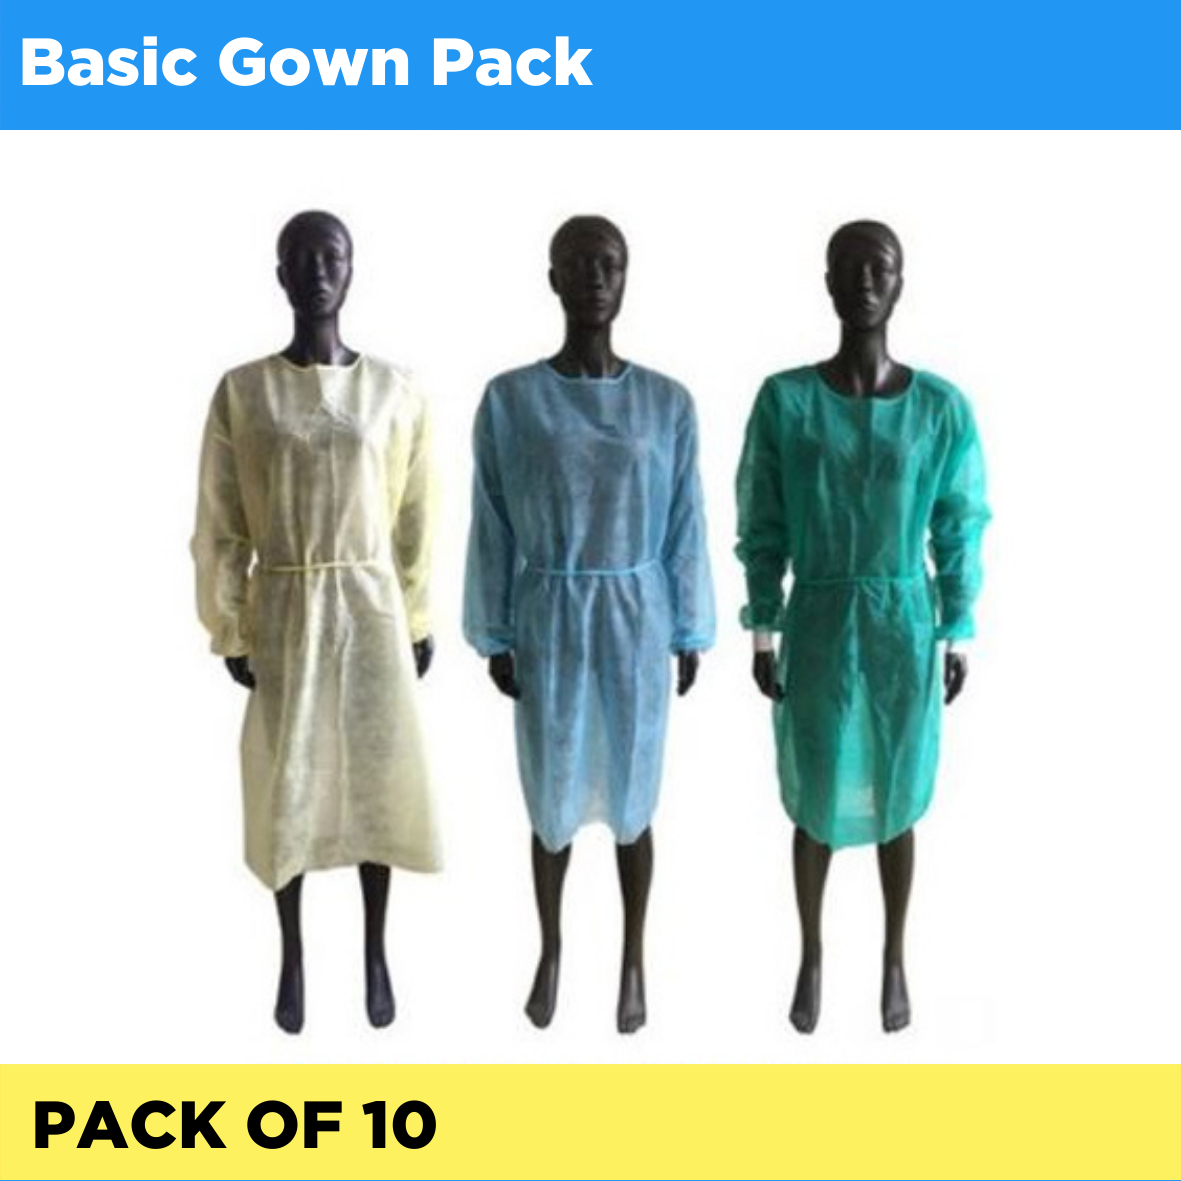 Basic Gown - Pack of 10 (Listing ID: 4653900202053)